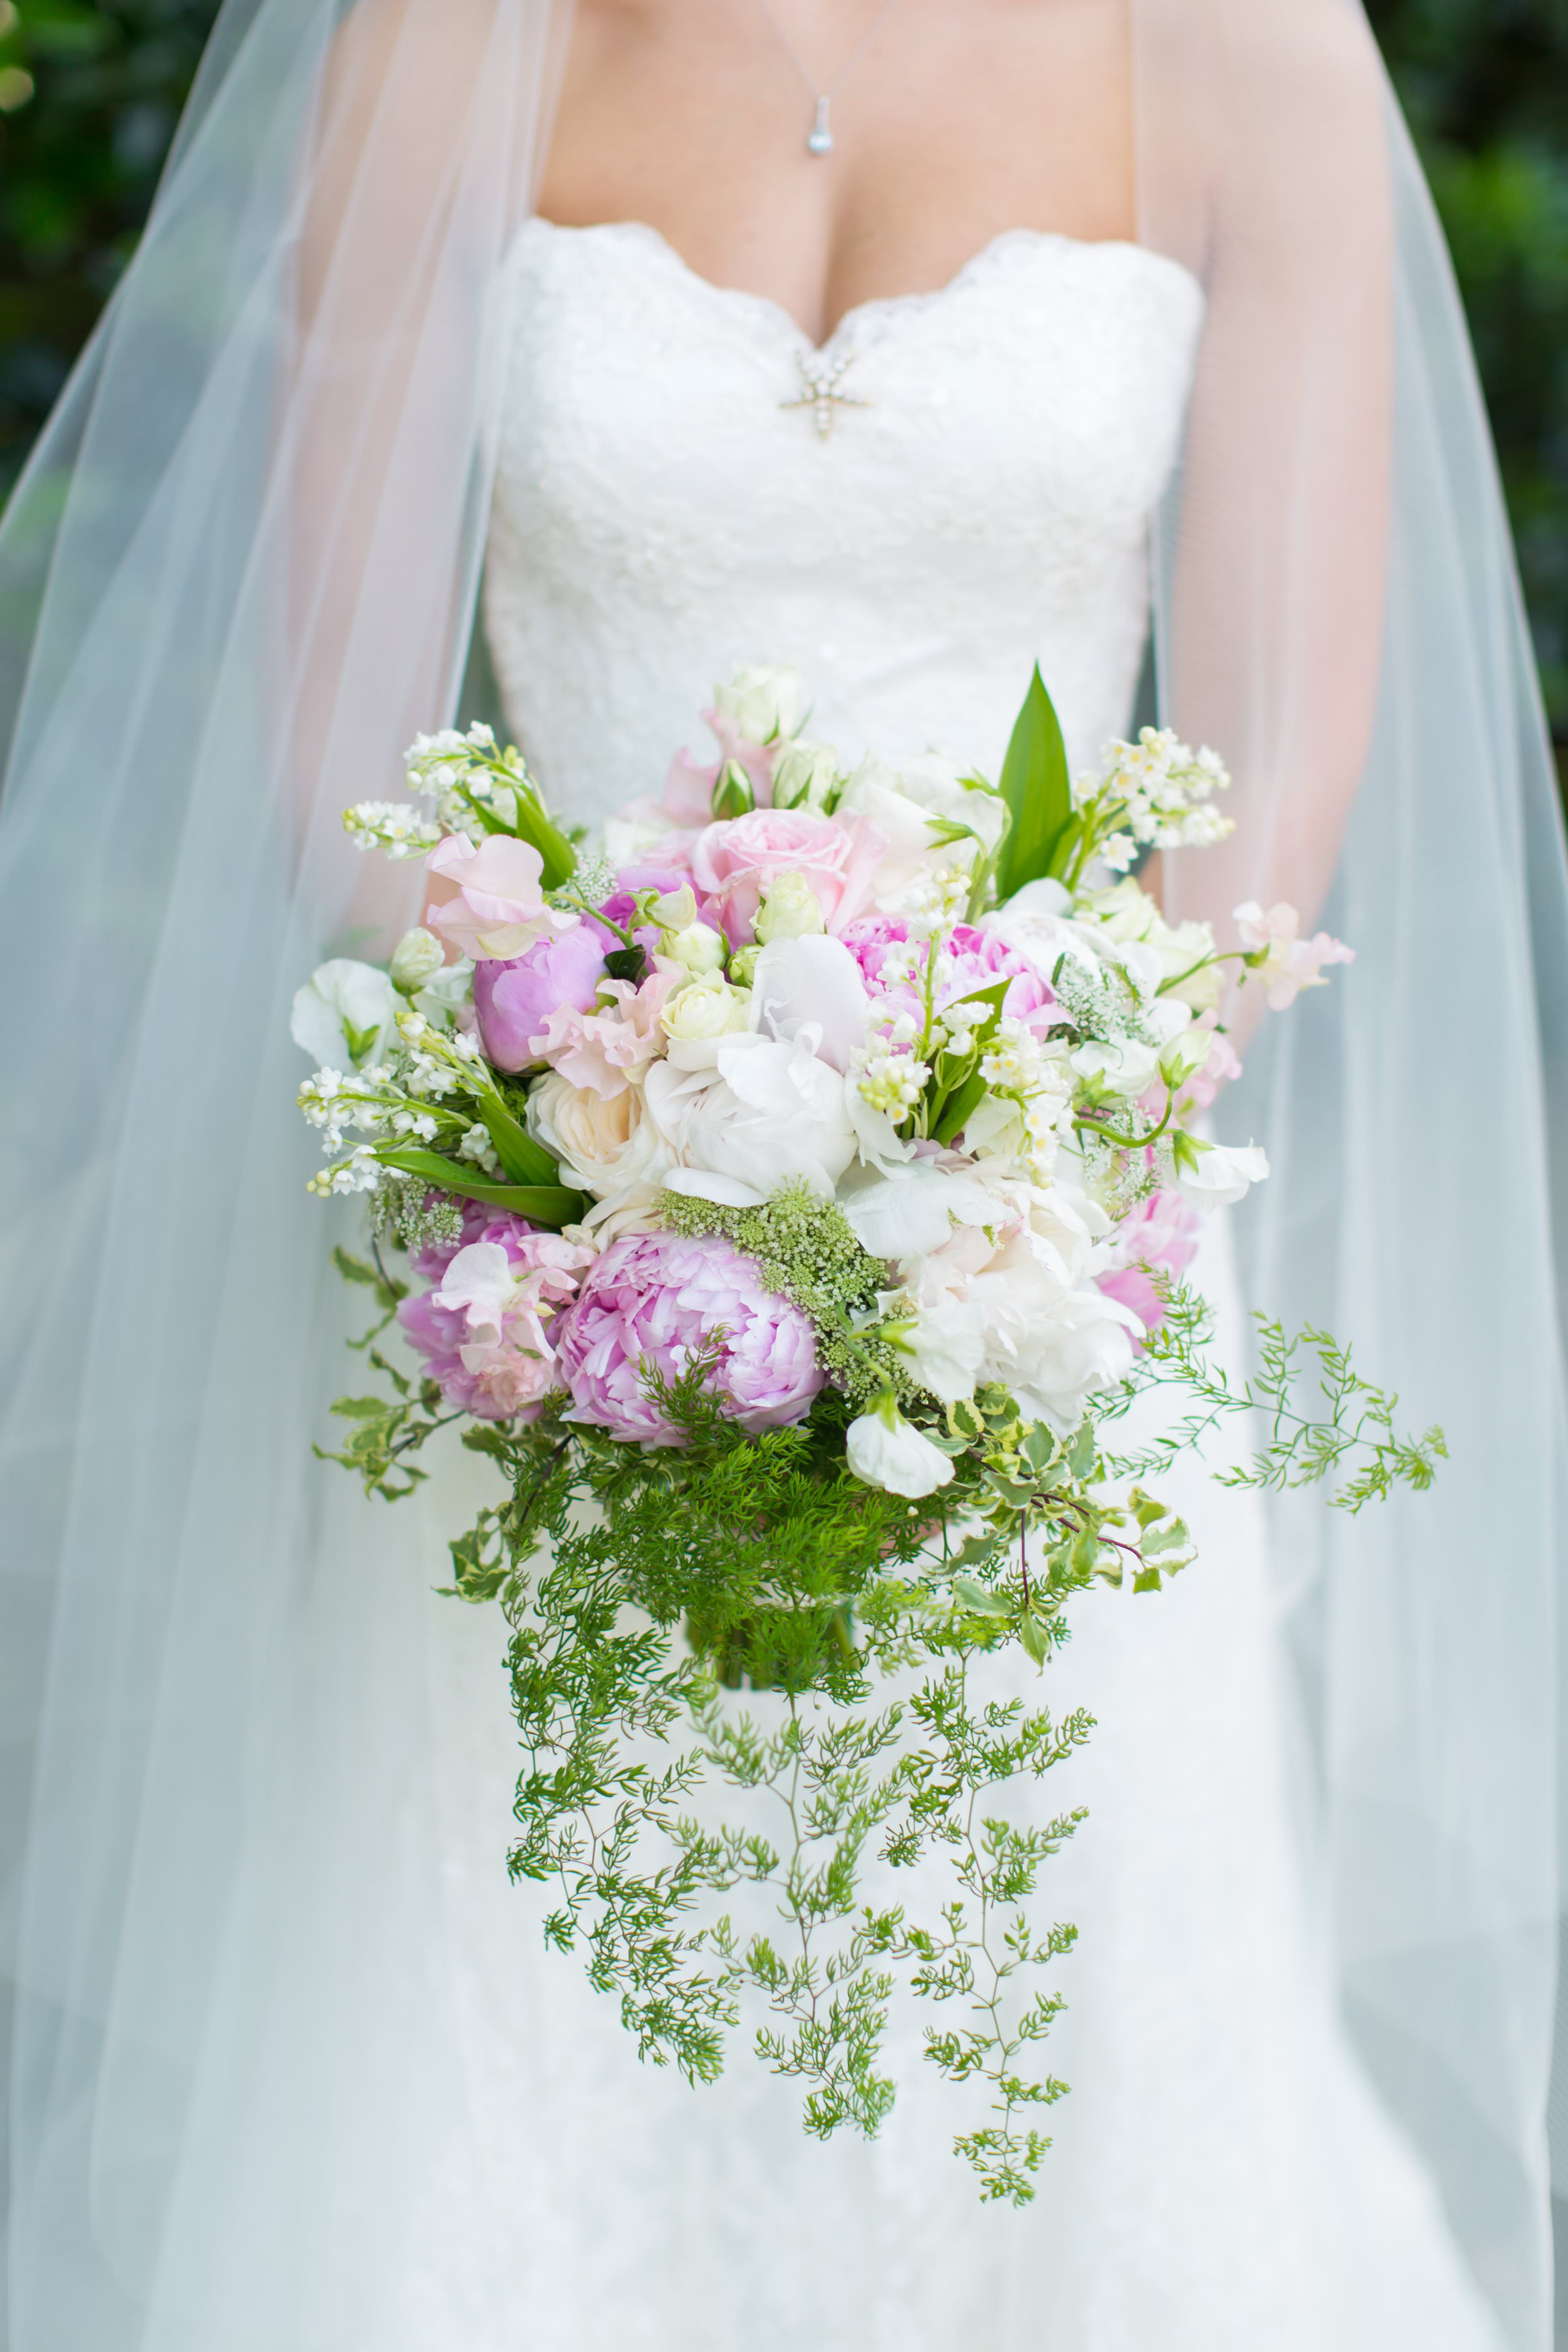 Annie's gorgeous bouquet by  Atlanta wedding florist Parties To Die For  was overflowing with color and texture!  Click here  to view more photos from Christian and Annie's  wedding at The Estate .